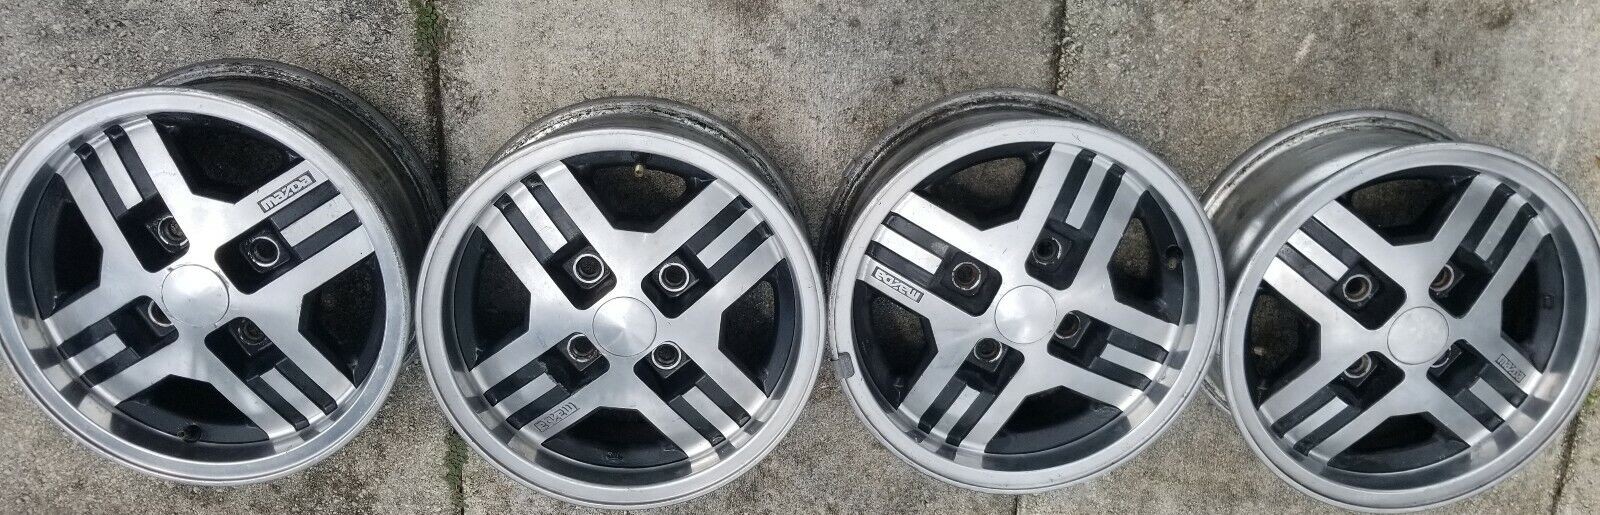 (4) 1984 Rx7 Wheels only no tires